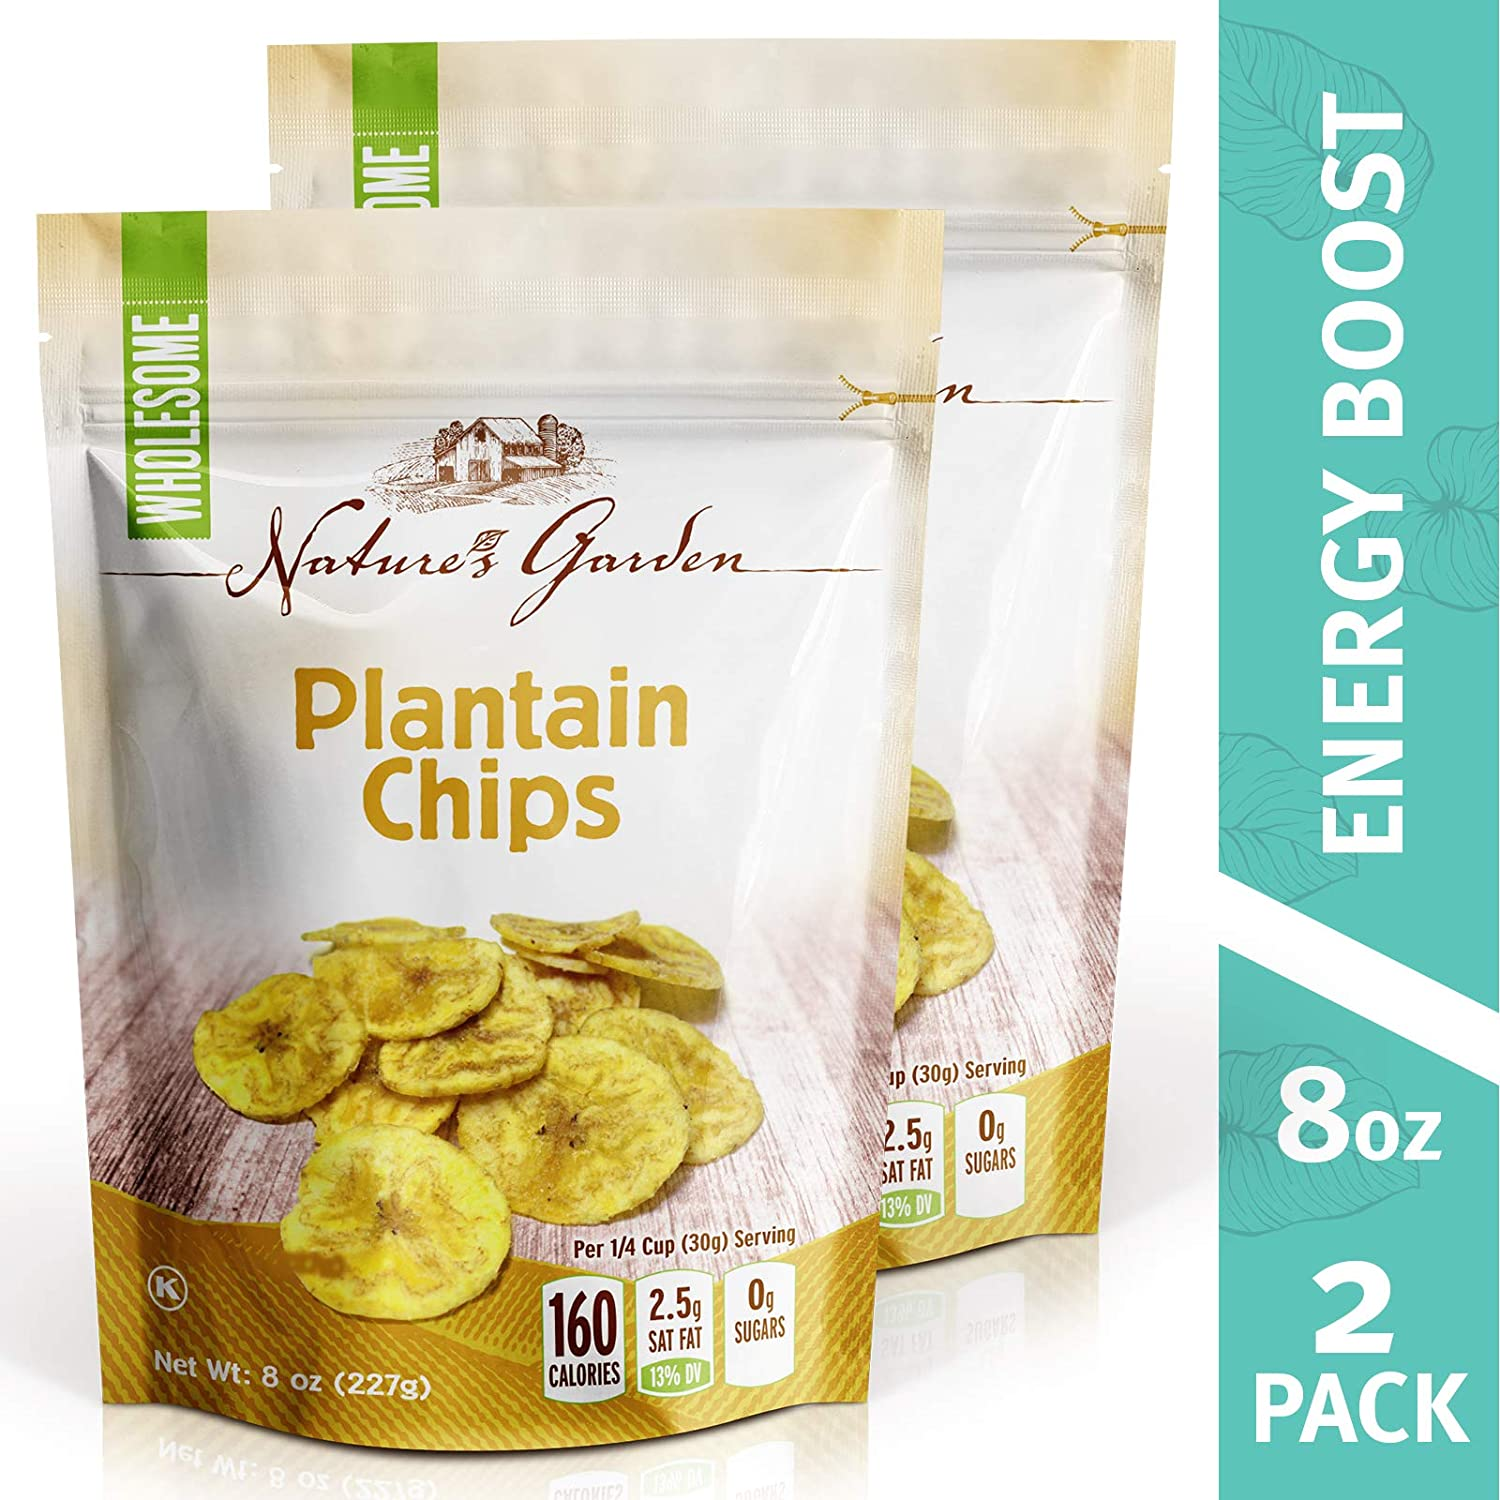 Nature's Garden Plantain Chips Sea Salted - 8oz. (Pack of 2)